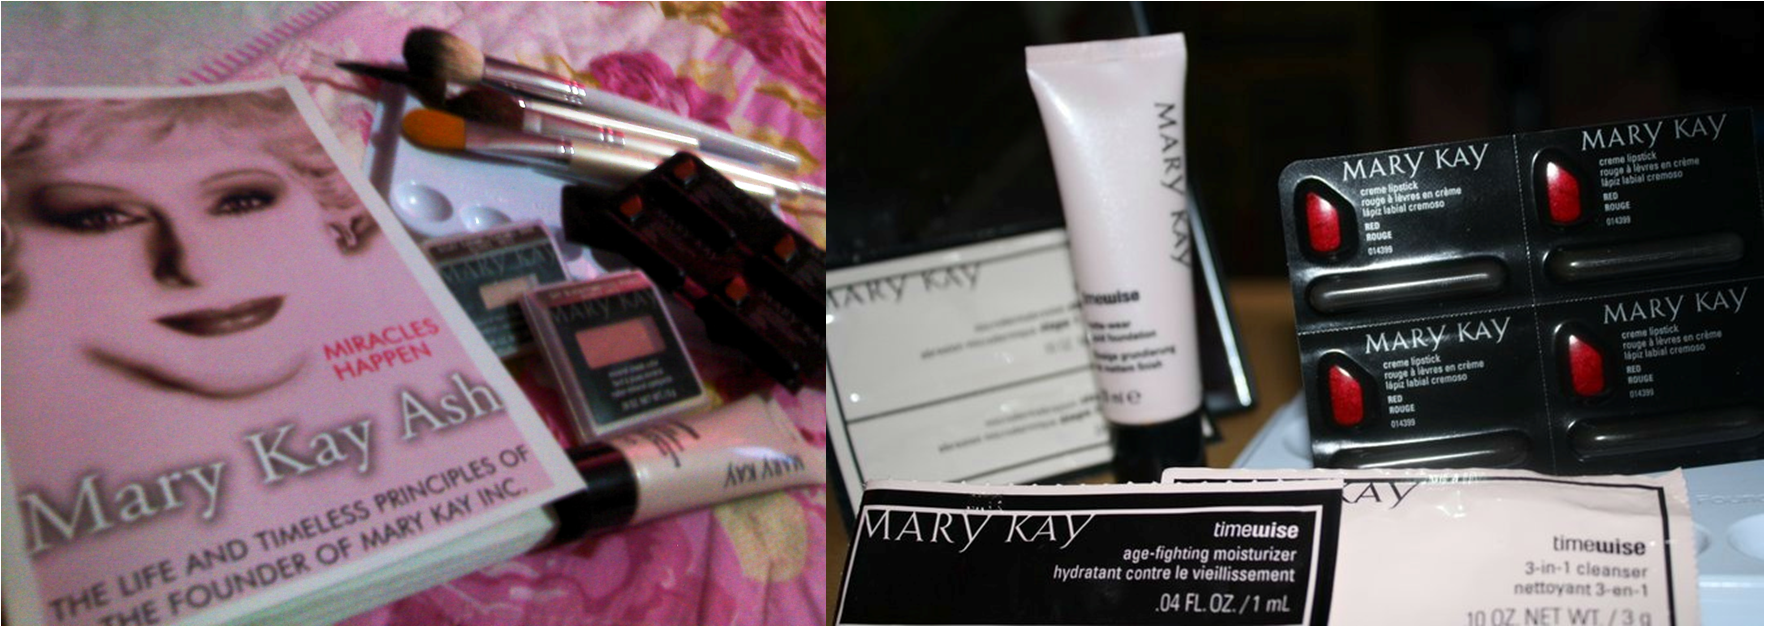 Do it yourself facial from mary kay lust and wandering my aunt who has recently become one of mary kays beauty consultants gave me some product samples for a do it yourself facial solutioingenieria Image collections